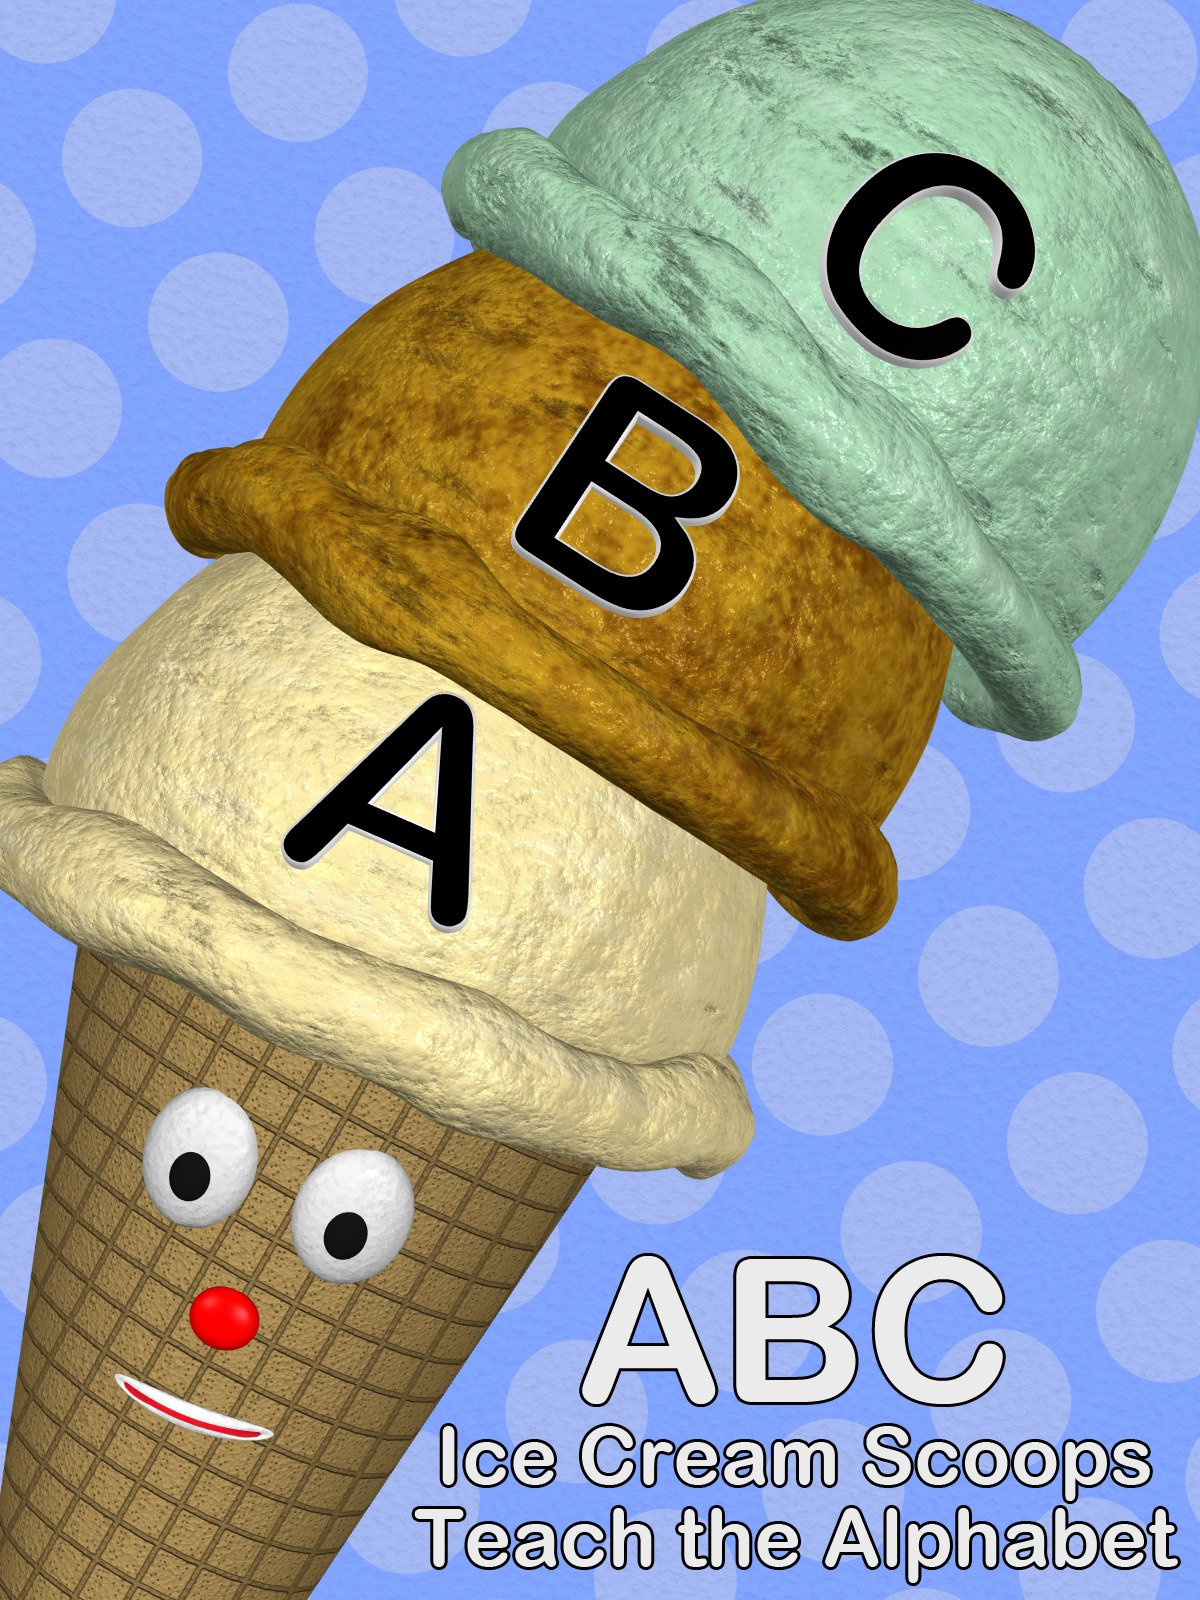 ABC Ice Cream Scoops Teach the Alphabet